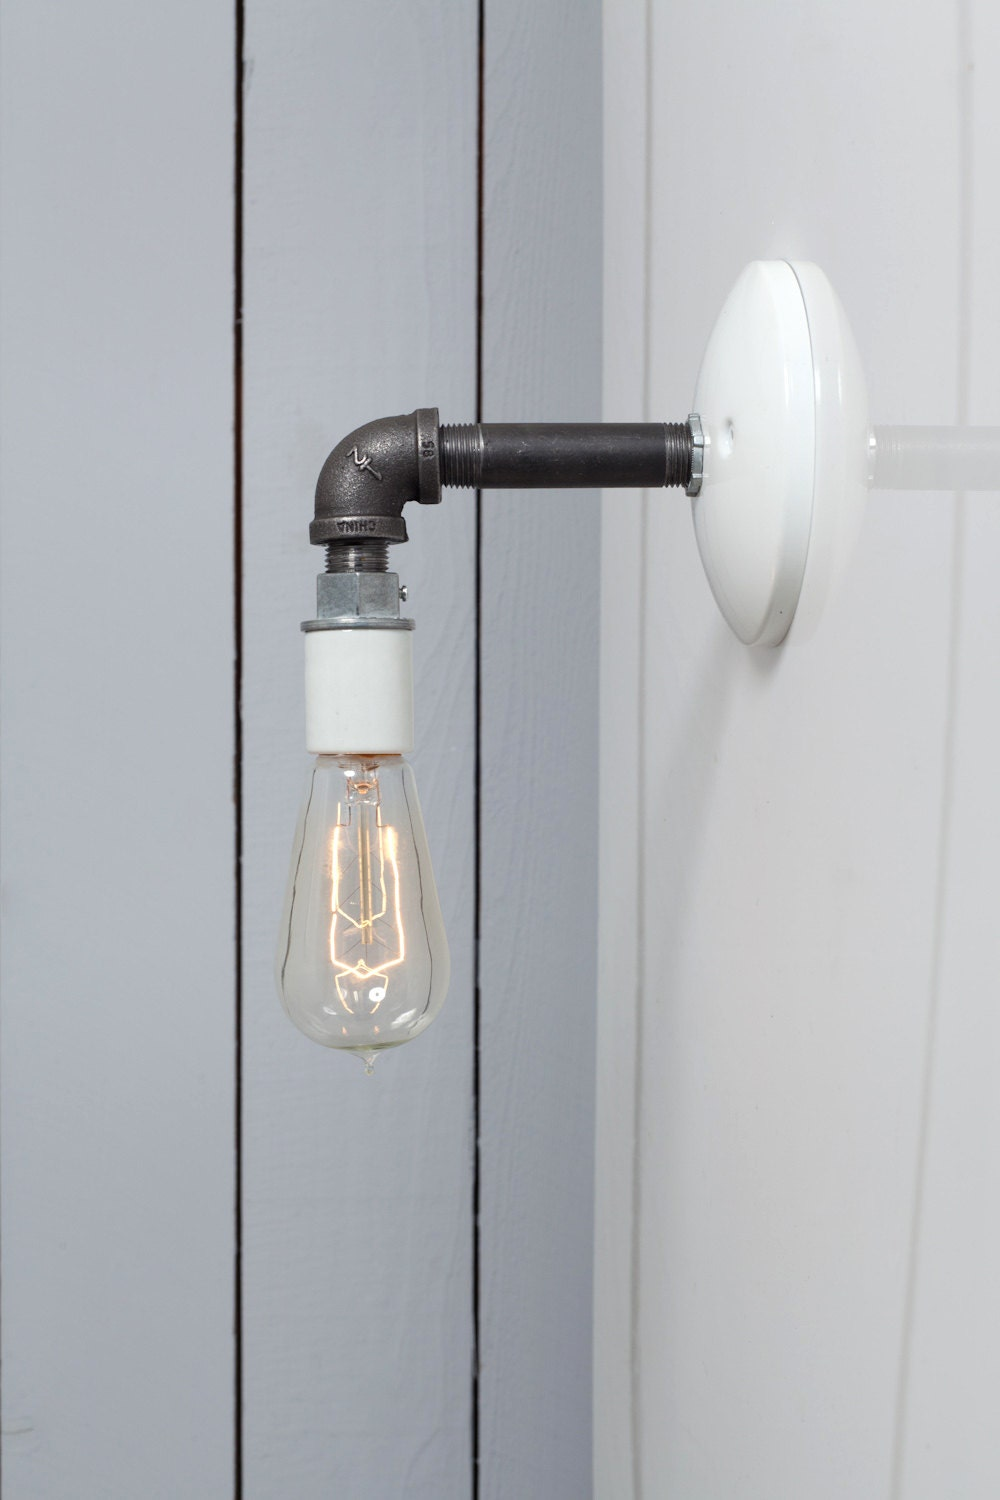 Black Pipe Wall Sconces : Industrial Wall Sconce Black Pipe Light Bare Bulb Lamp